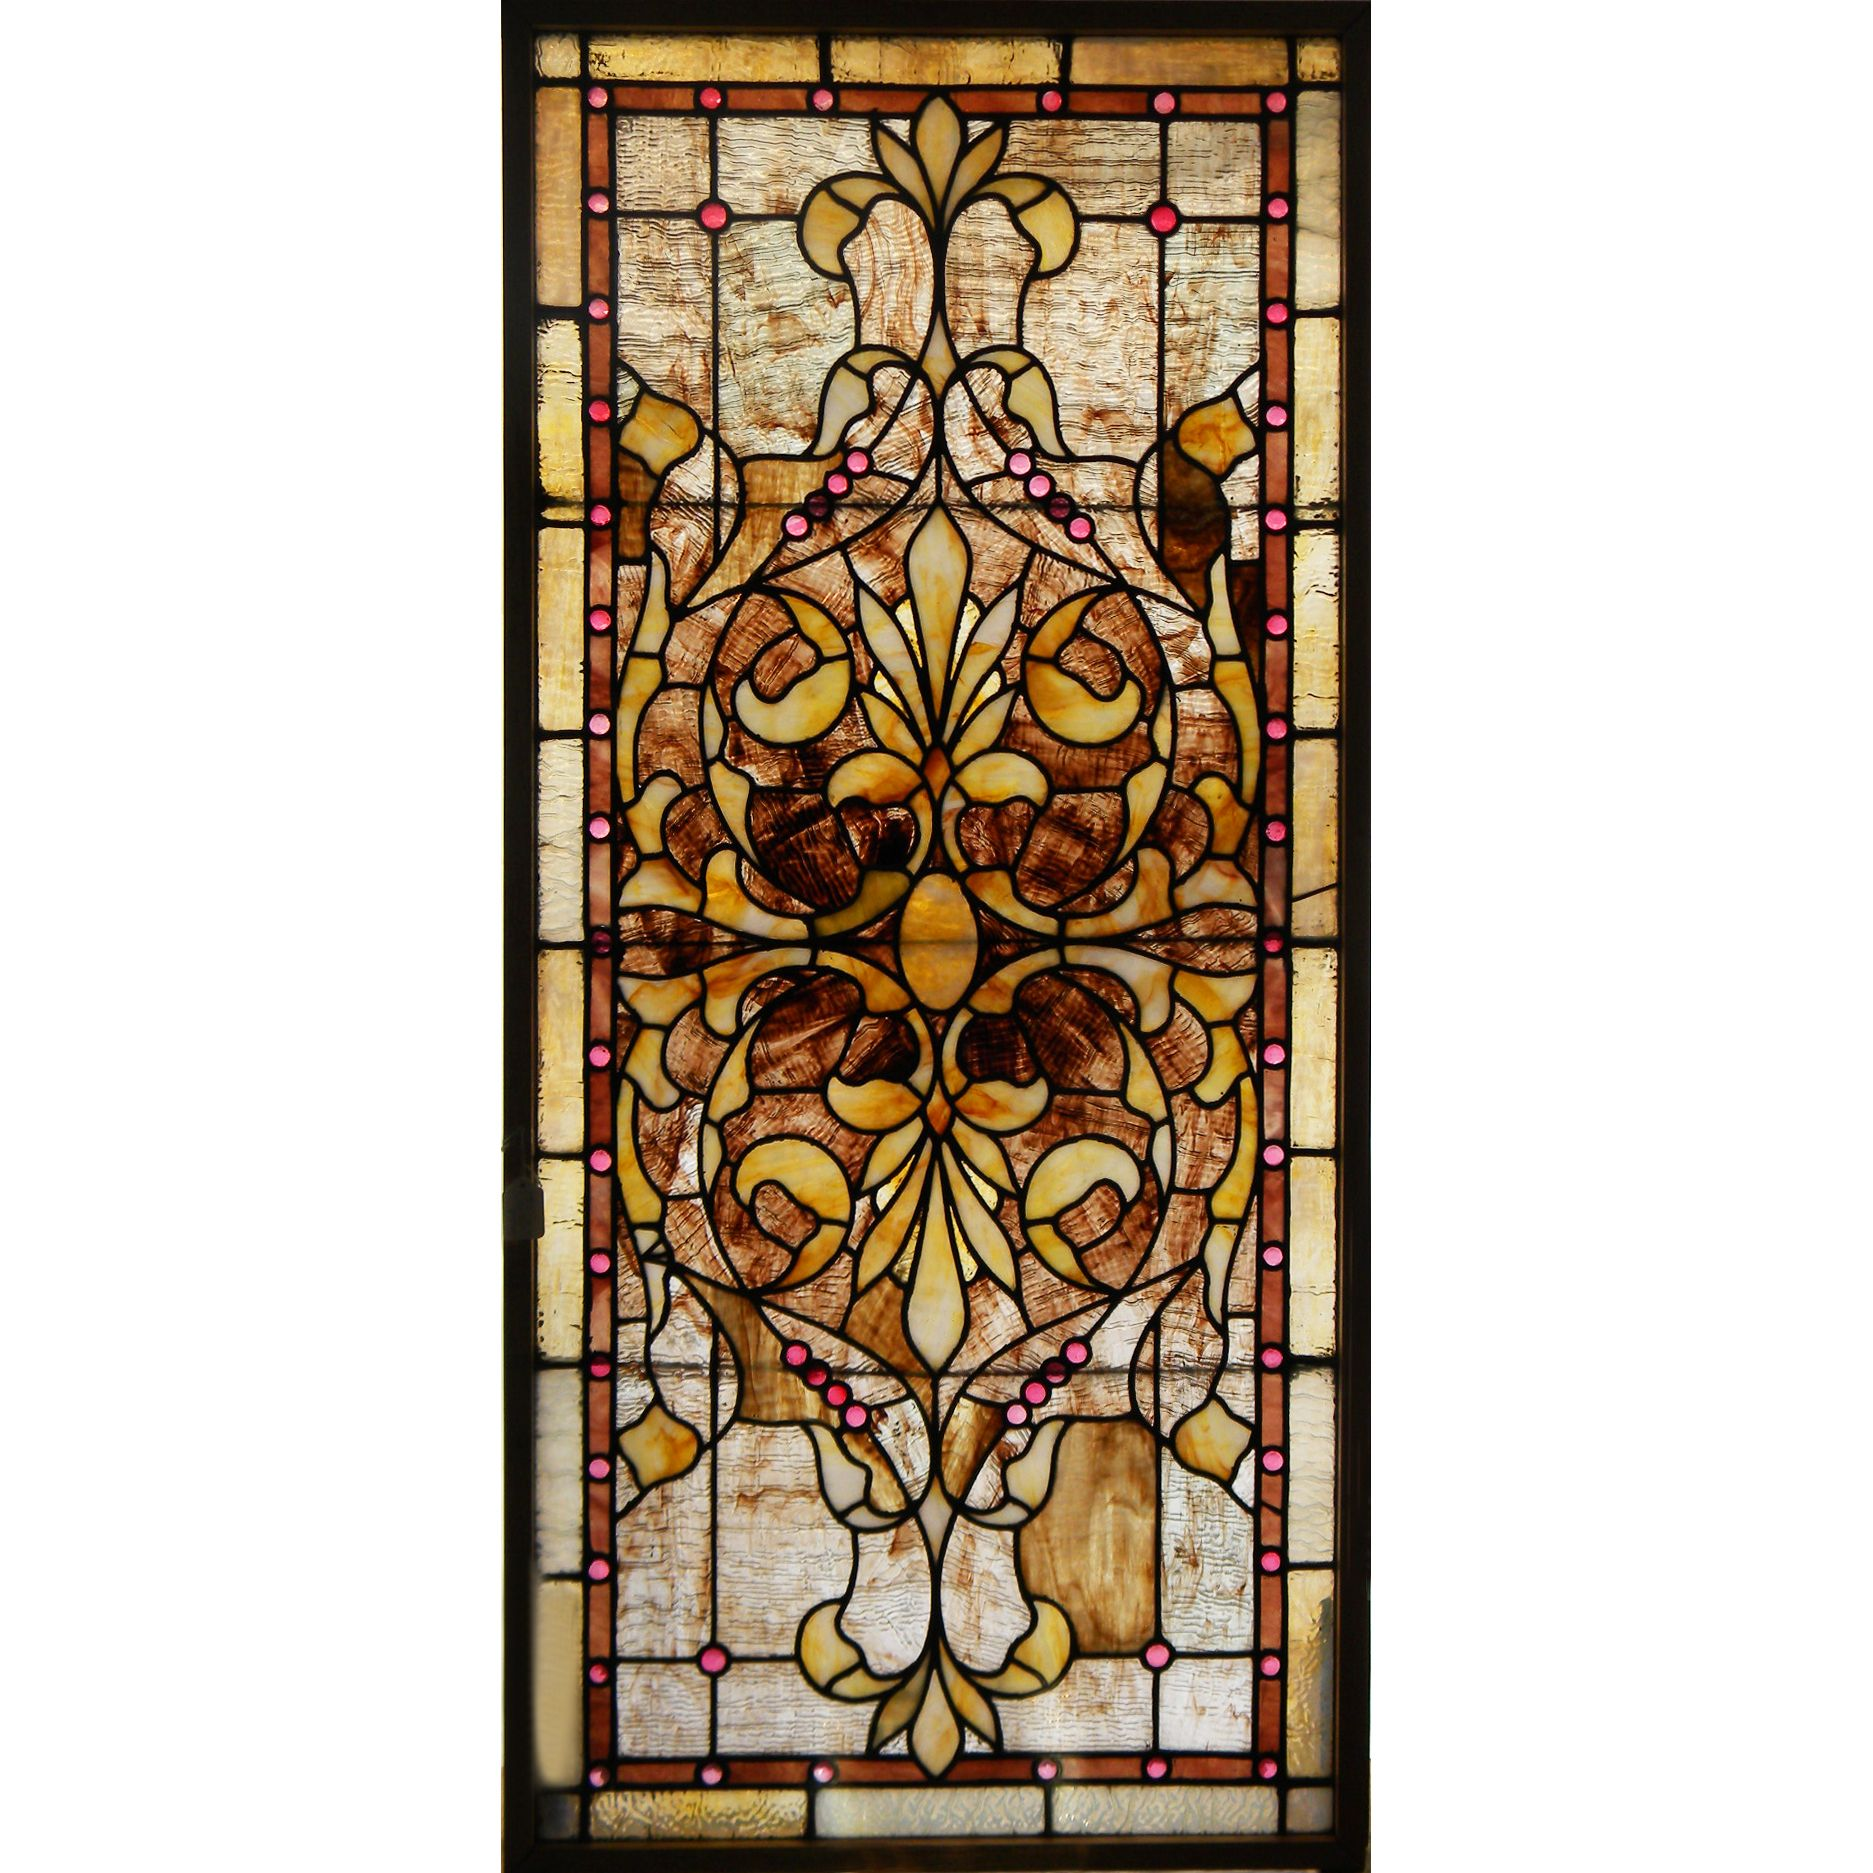 Leaded glass designs for windows - Click To Close Image Click And Drag To Move Use Arrow Keys For Next Leaded Glassantique Stained Glass Windowsantique